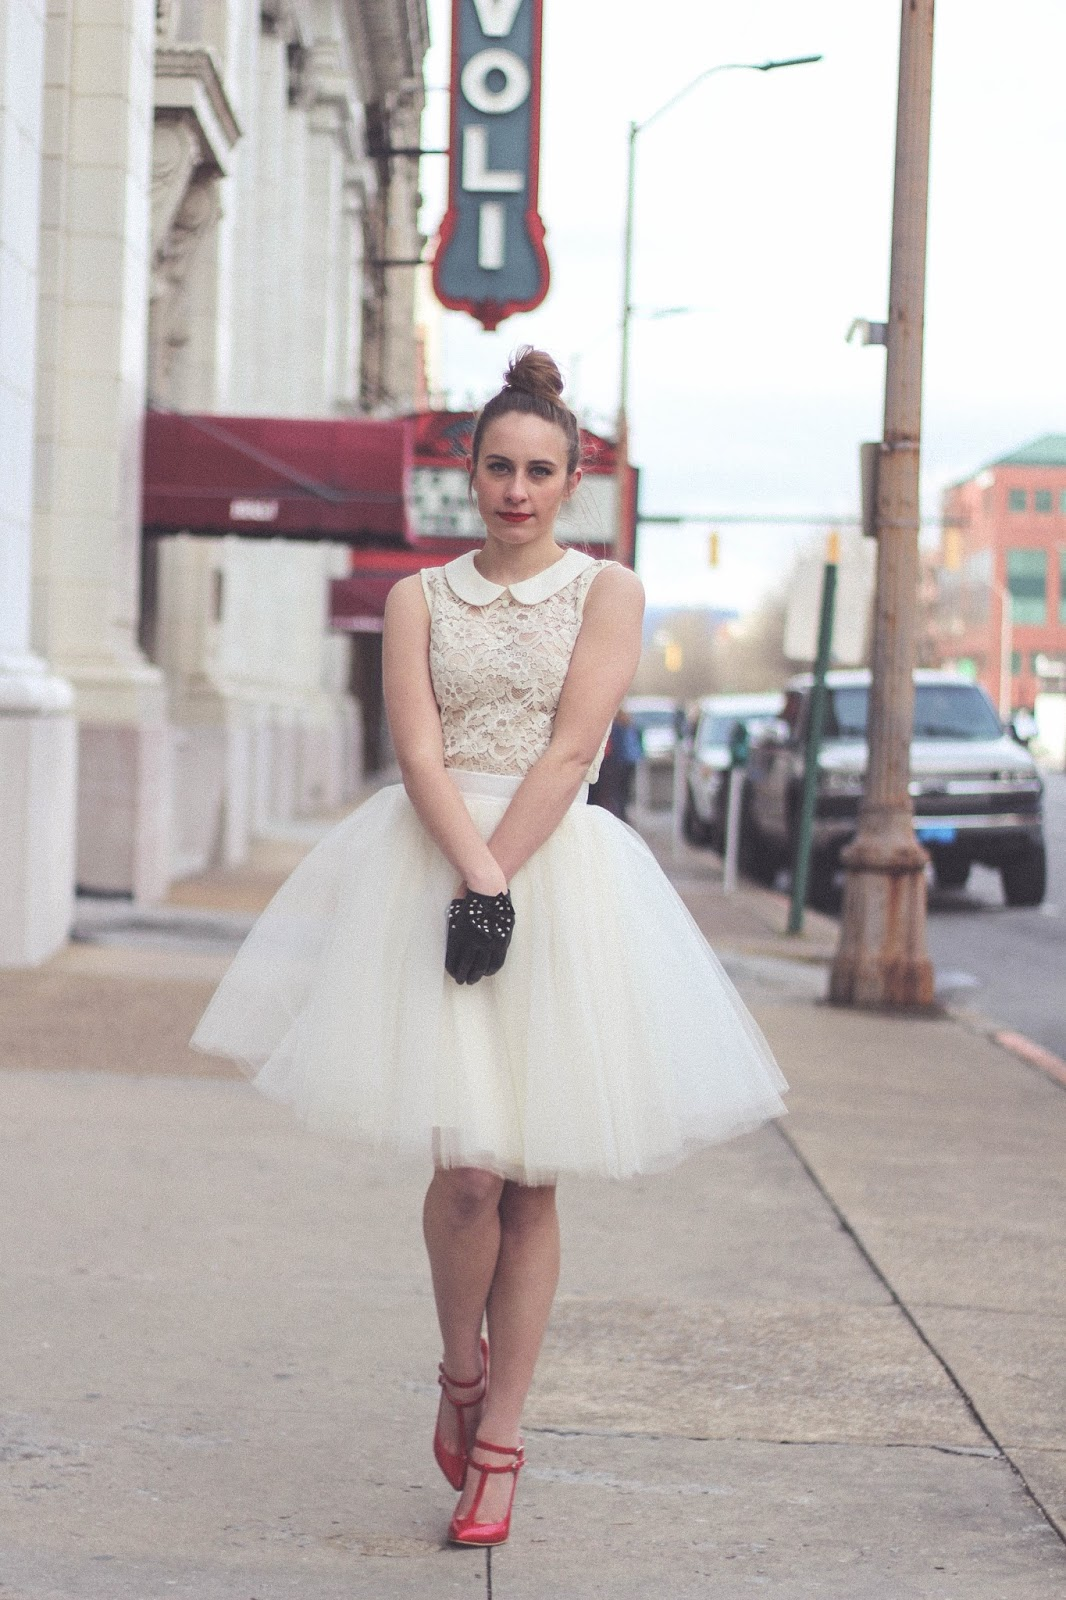 Tulle Skirt, Lace Peter Pan Collar Top, Red Heels, Romantic, Whimsical, Fashion Blogger, Ballerina, Movies, Ballet, The Red Shoes, Movie Blogger